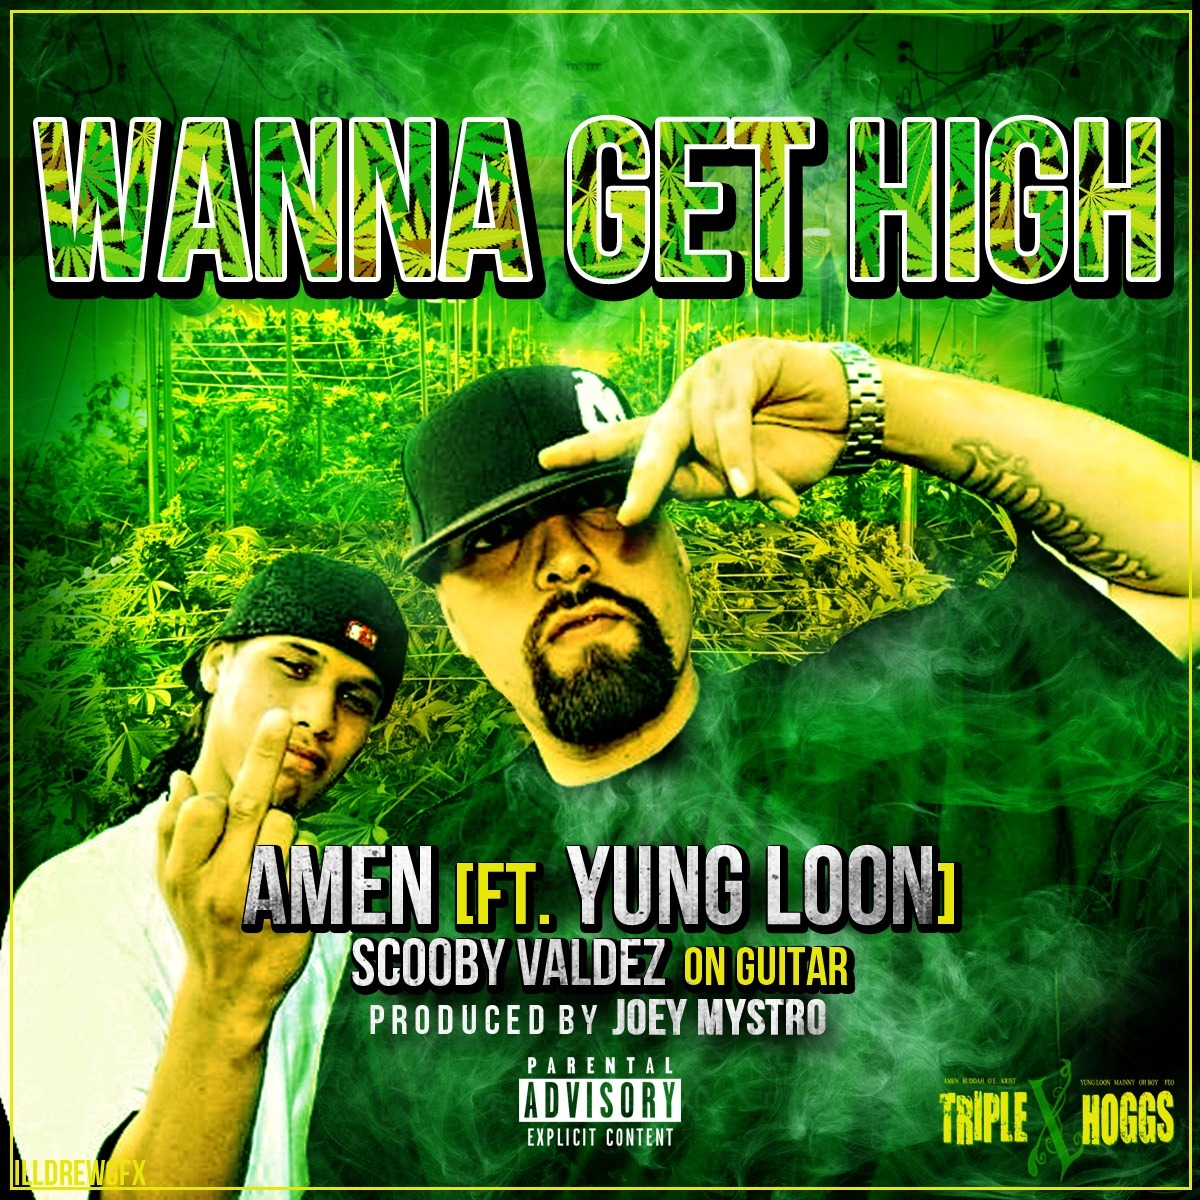 Amen ft. Yung Loon - Wanna Get High (Produced by Joey Mystro) [Thizzler.com]